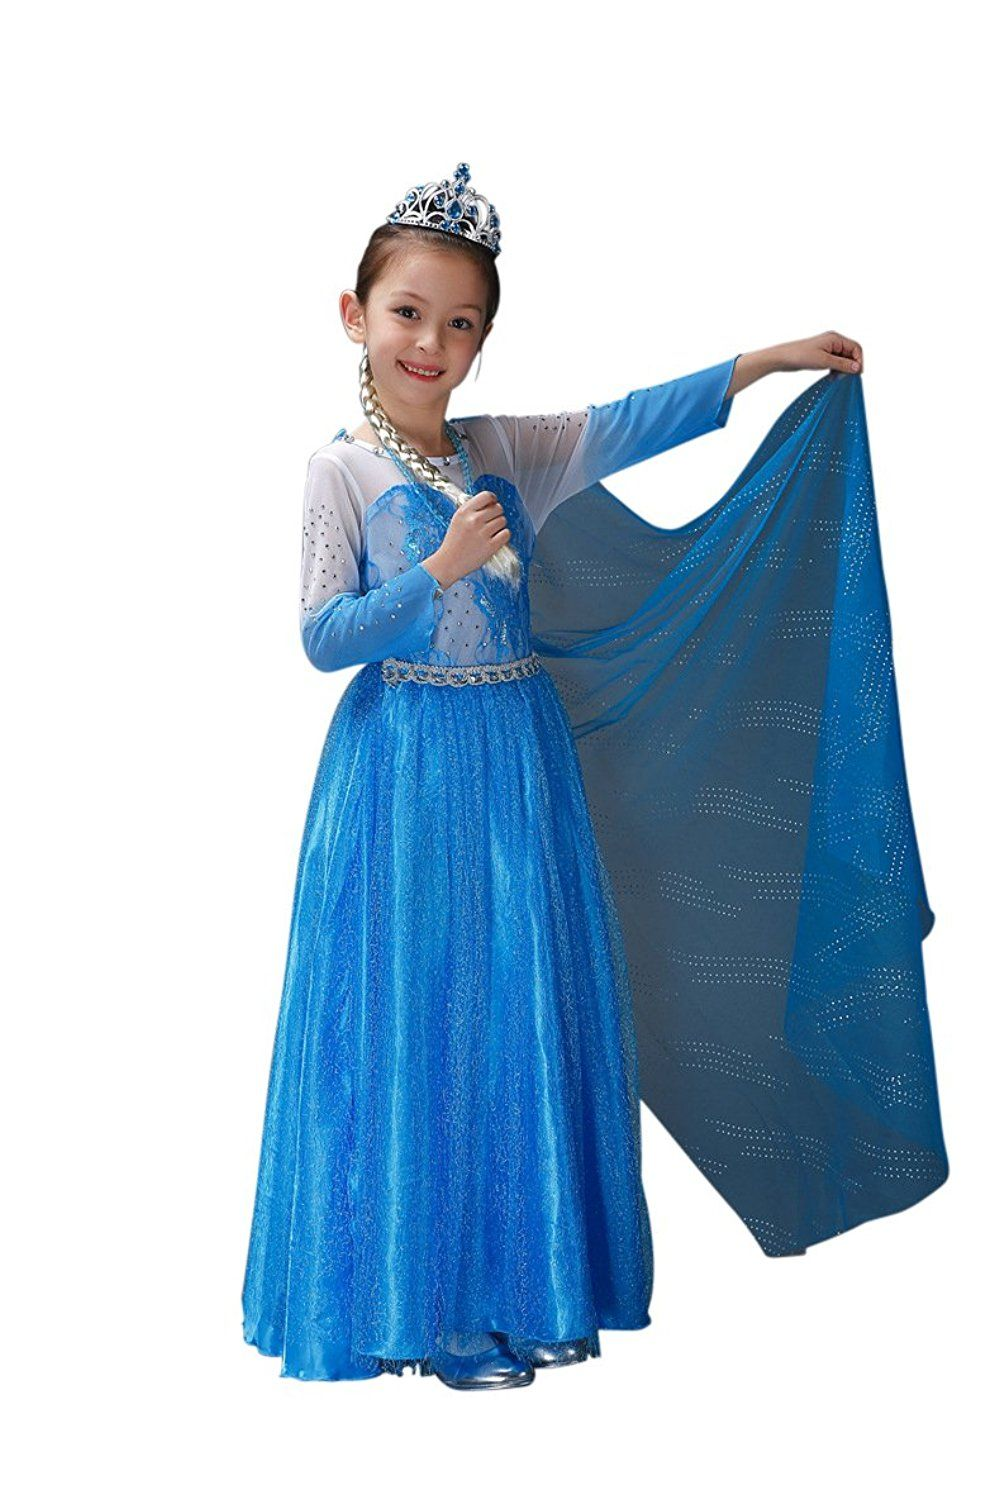 awesome E5 Disney Frozen Inspired Queen Elsa Costume Dress Halloween Party 4-12Y